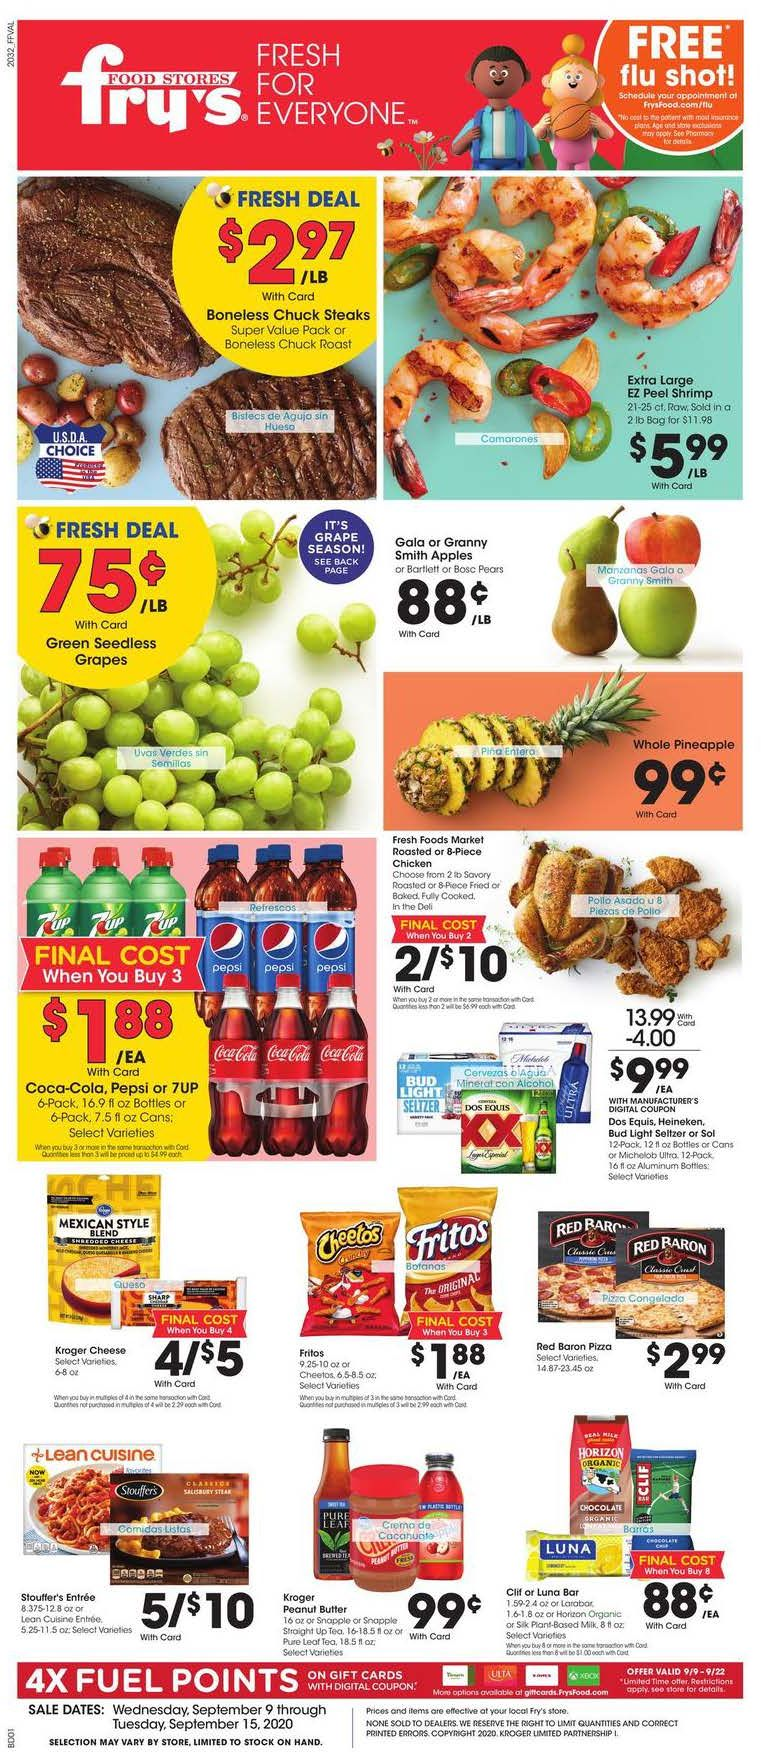 frys september ad valid from sep 9 sep 15 2020